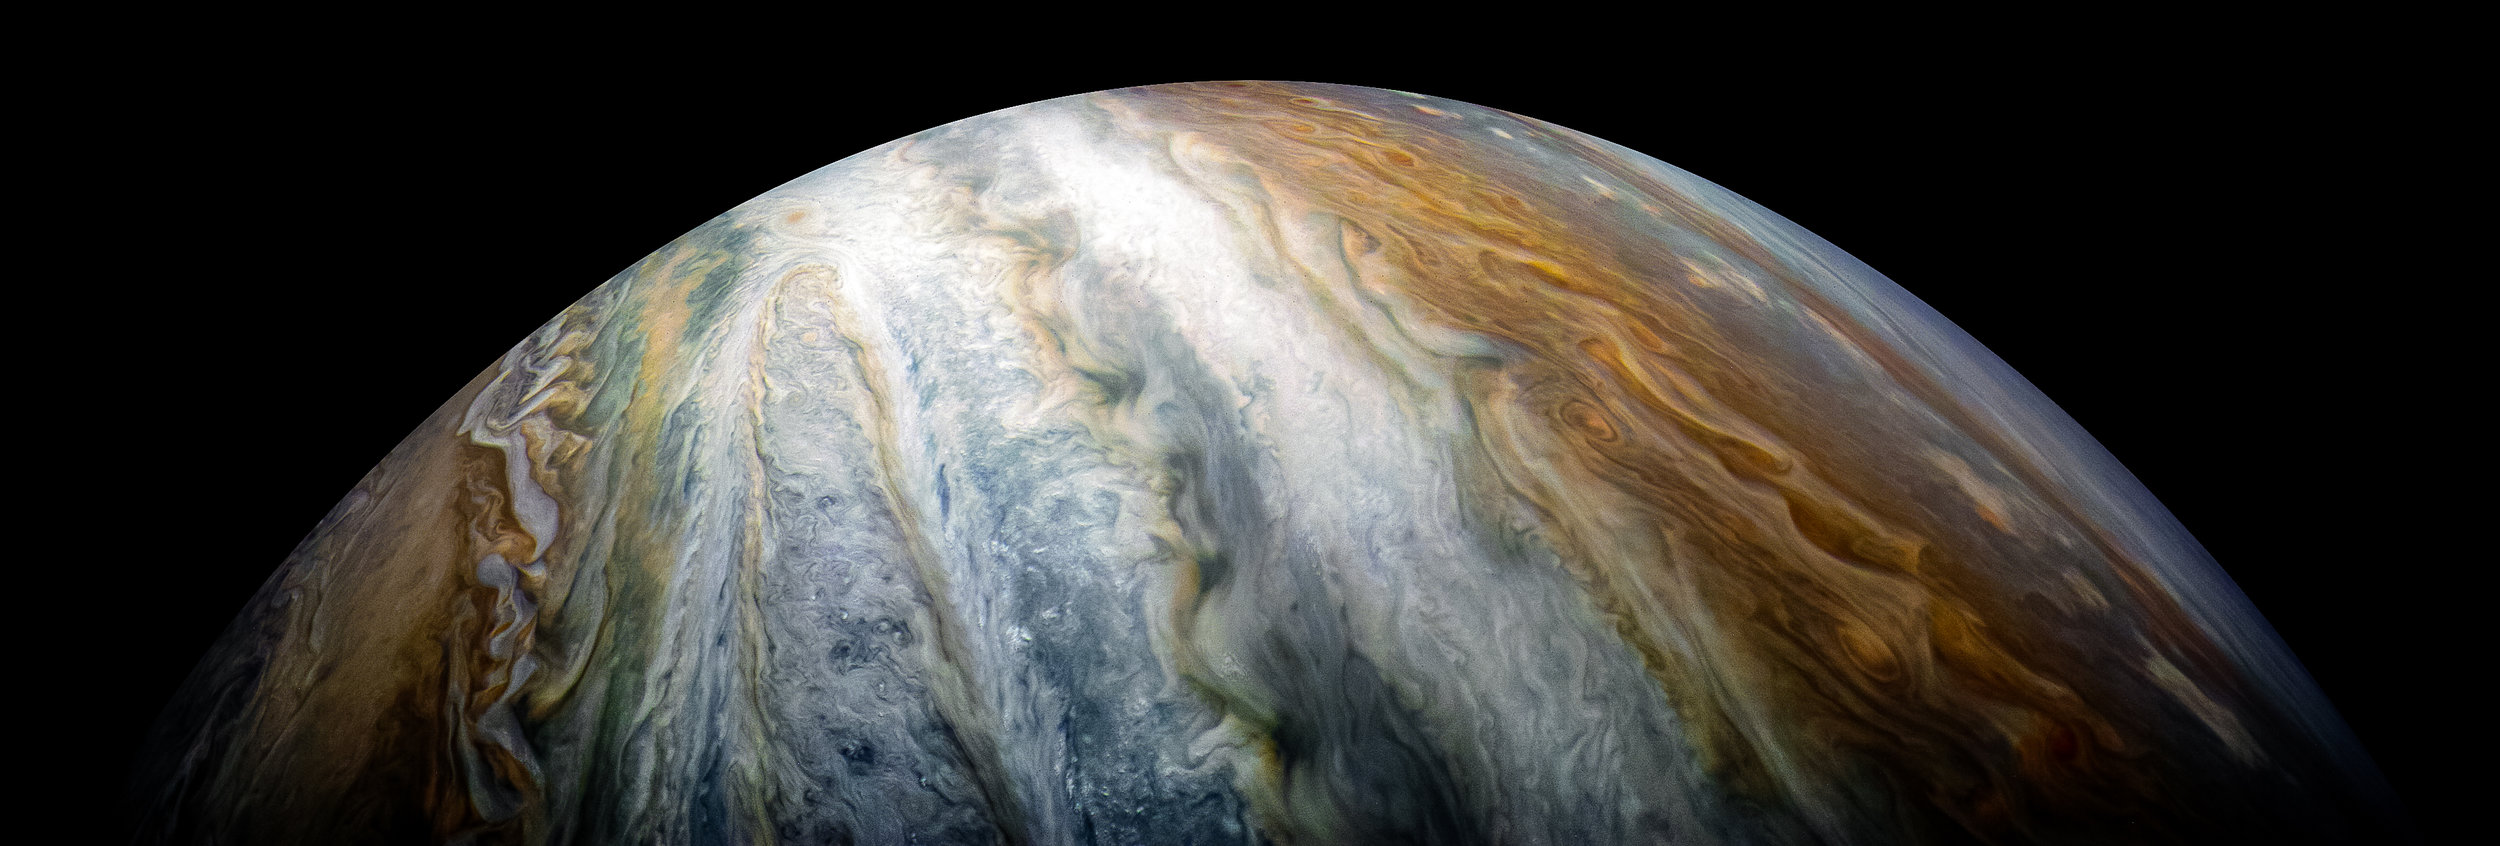 The colorful cloud belts dominate Jupiter's southern hemisphere in this image captured by NASA's Juno spacecraft. - Image Credit:  NASA/JPL-Caltech/SwRI/MSSS/Kevin M. Gill